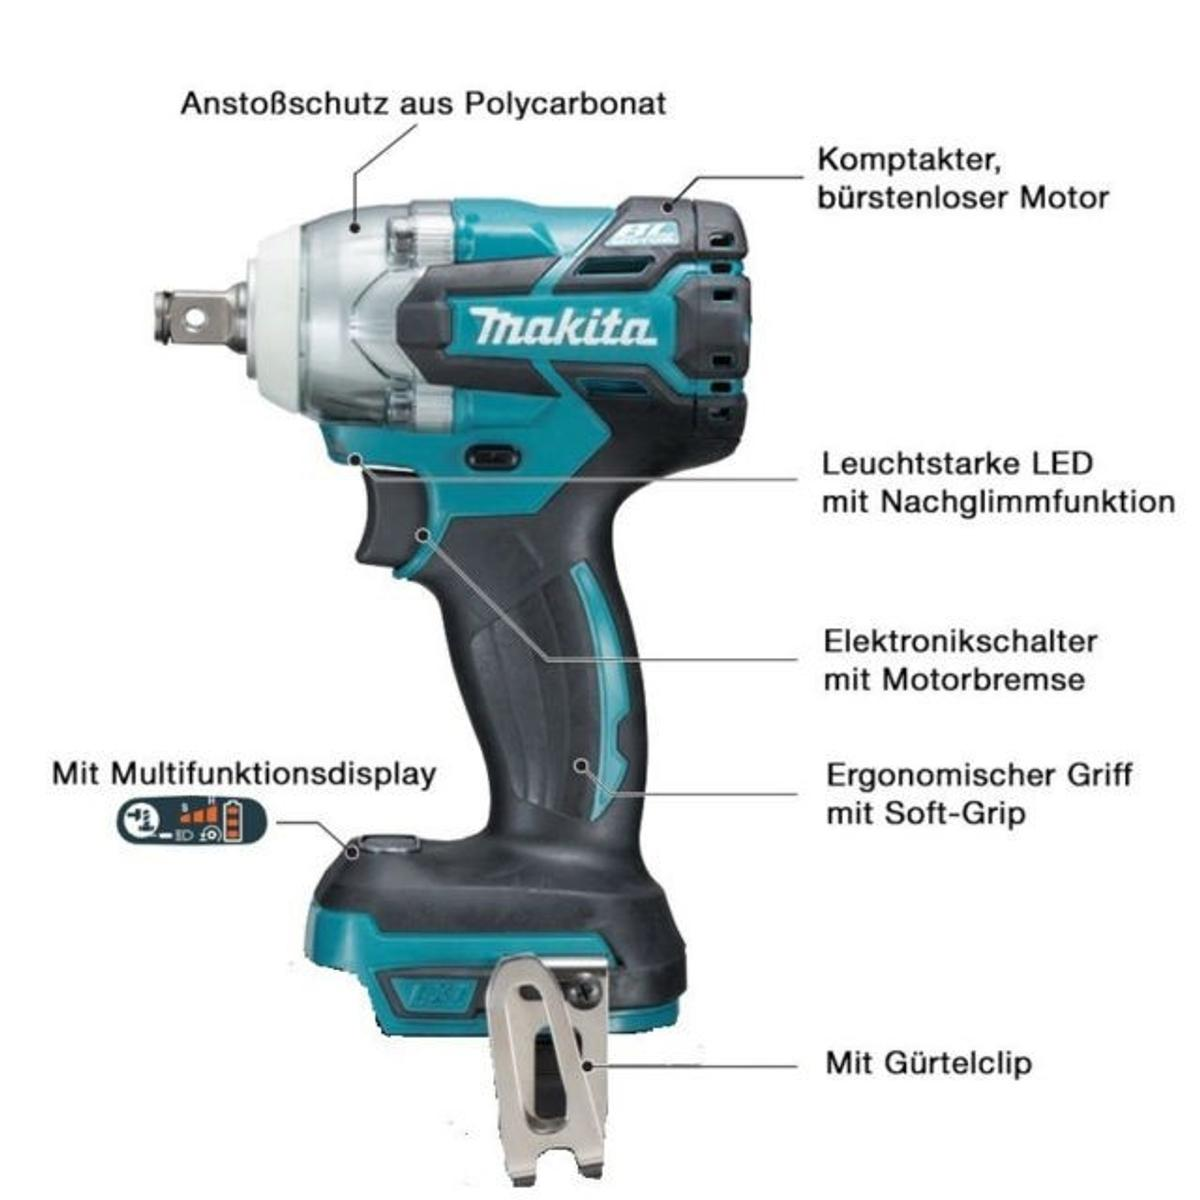 BRAND NEW IN BOX MAKITA IMPACT WRENCH DTW285Z